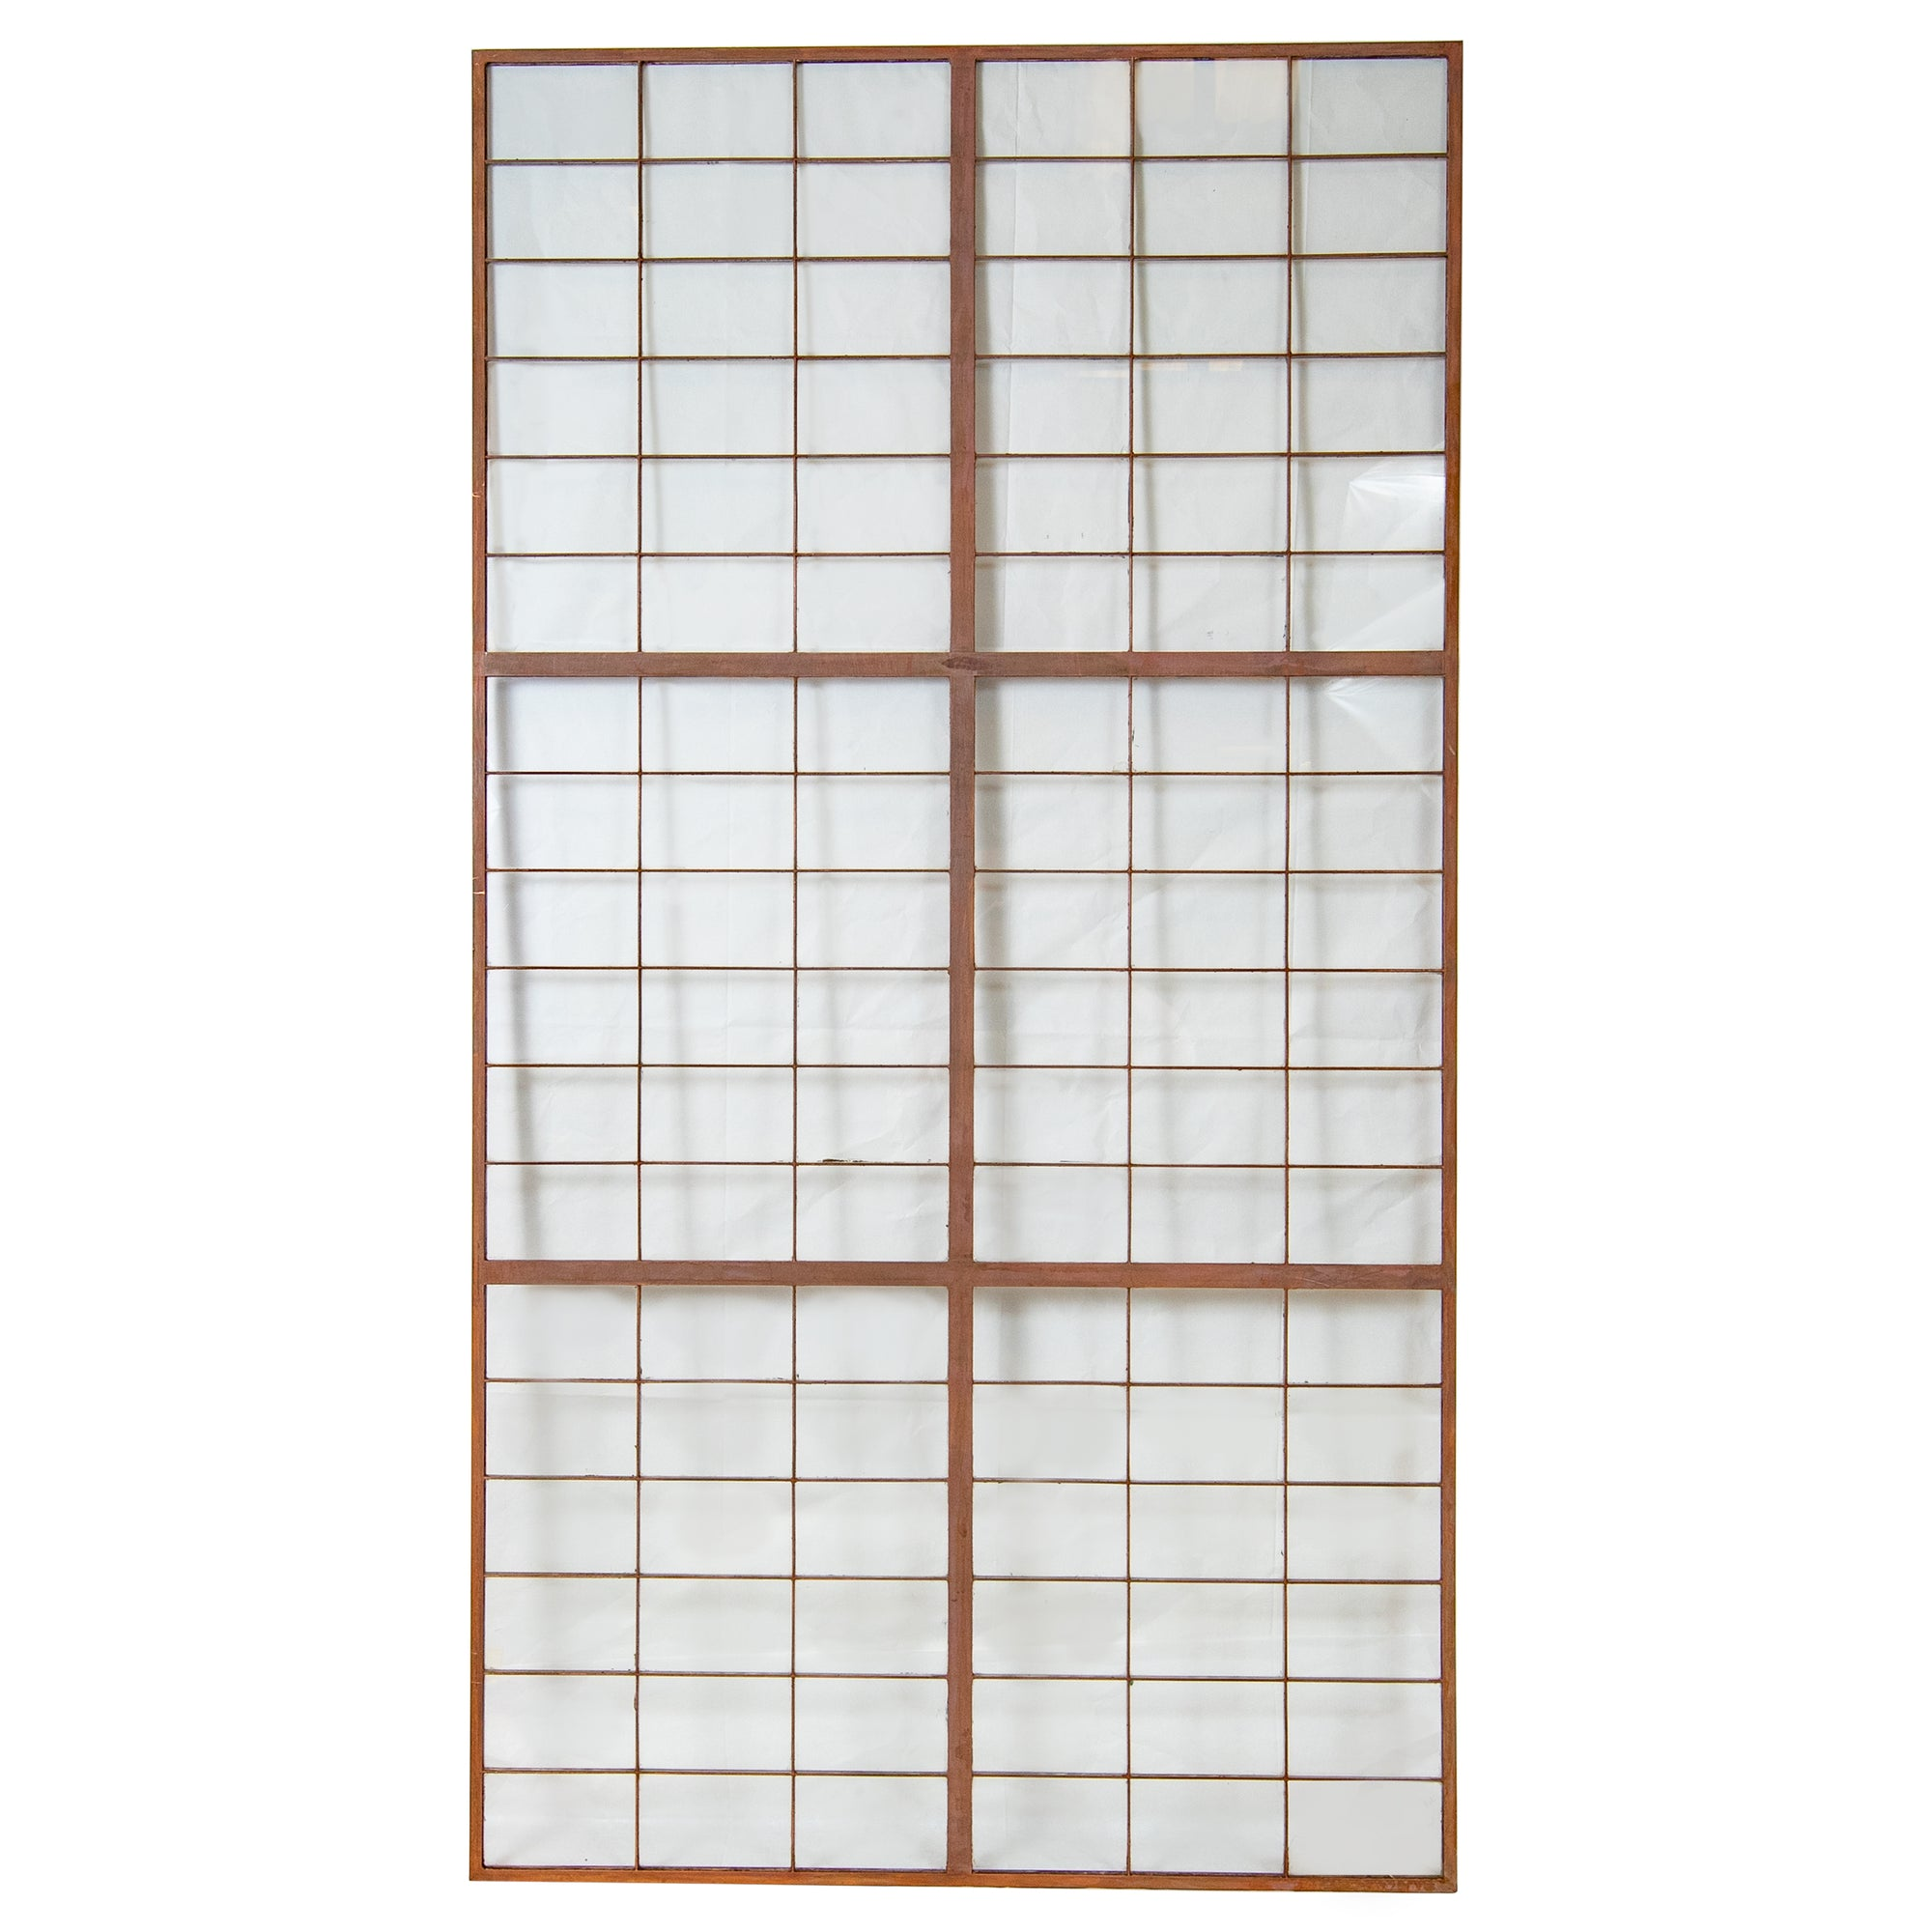 Glass Copper light Panels 78.5cm X 148cm - The Architectural Forum